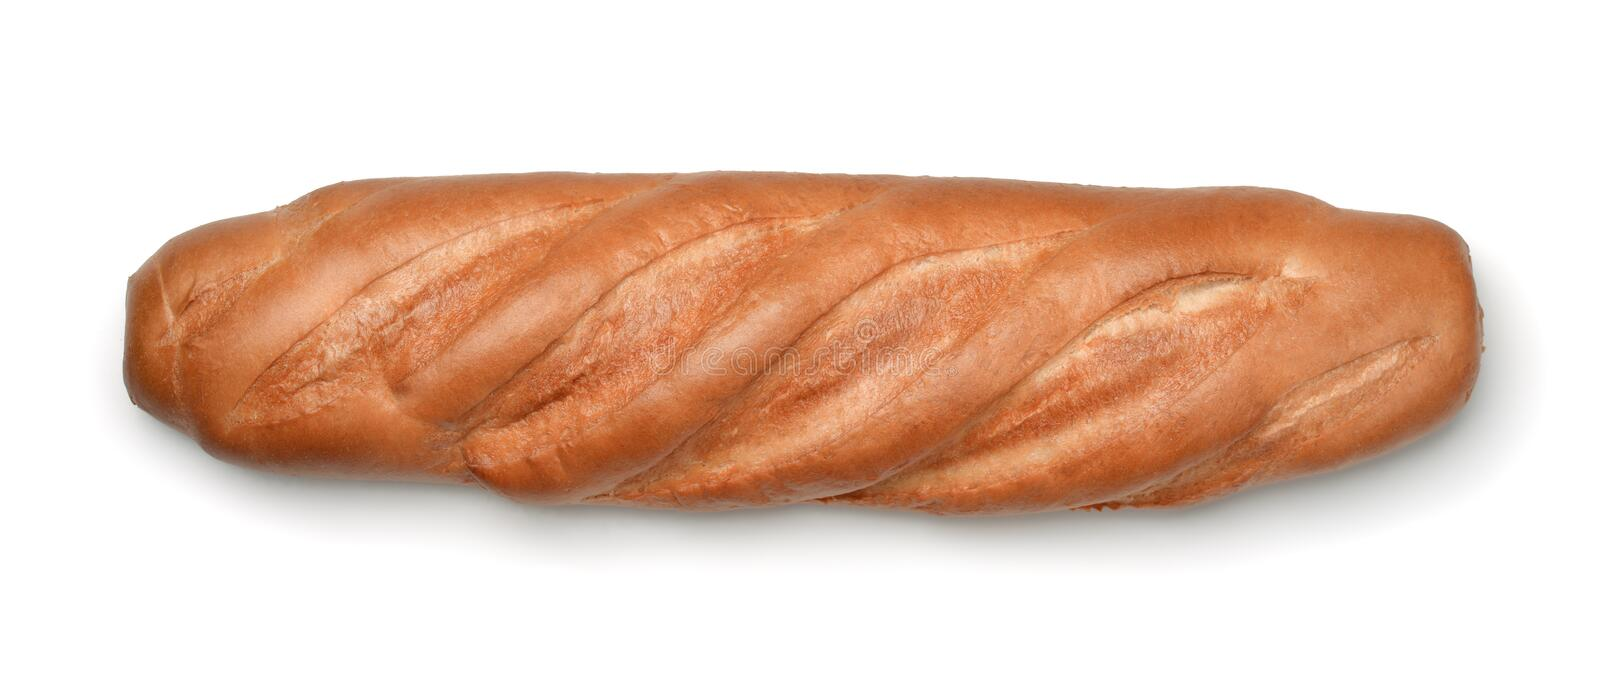 Top view of fresh bread loaf royalty free stock photography